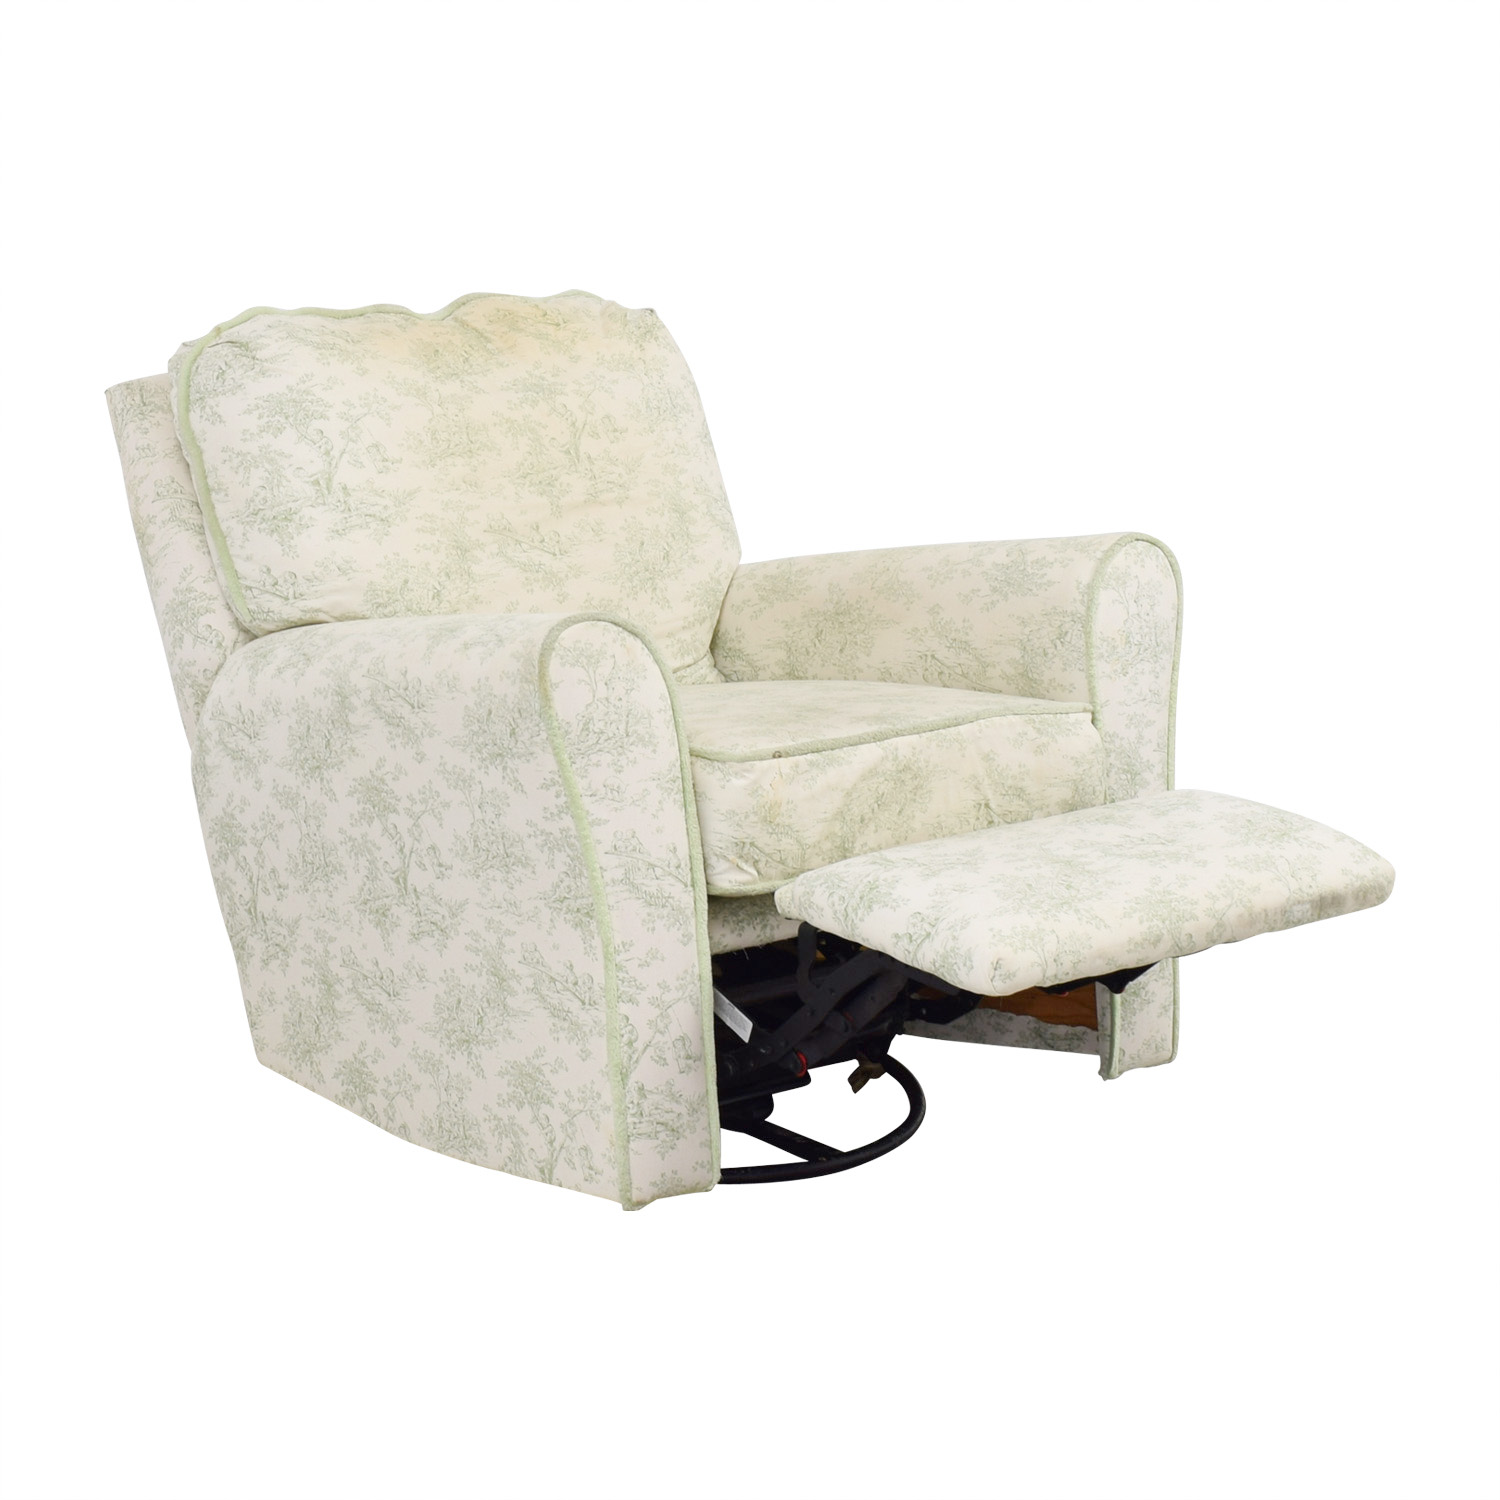 shop Bellini Baby Children's Playground White and Green Rocking Chair Recliner Bellini Baby Accent Chairs